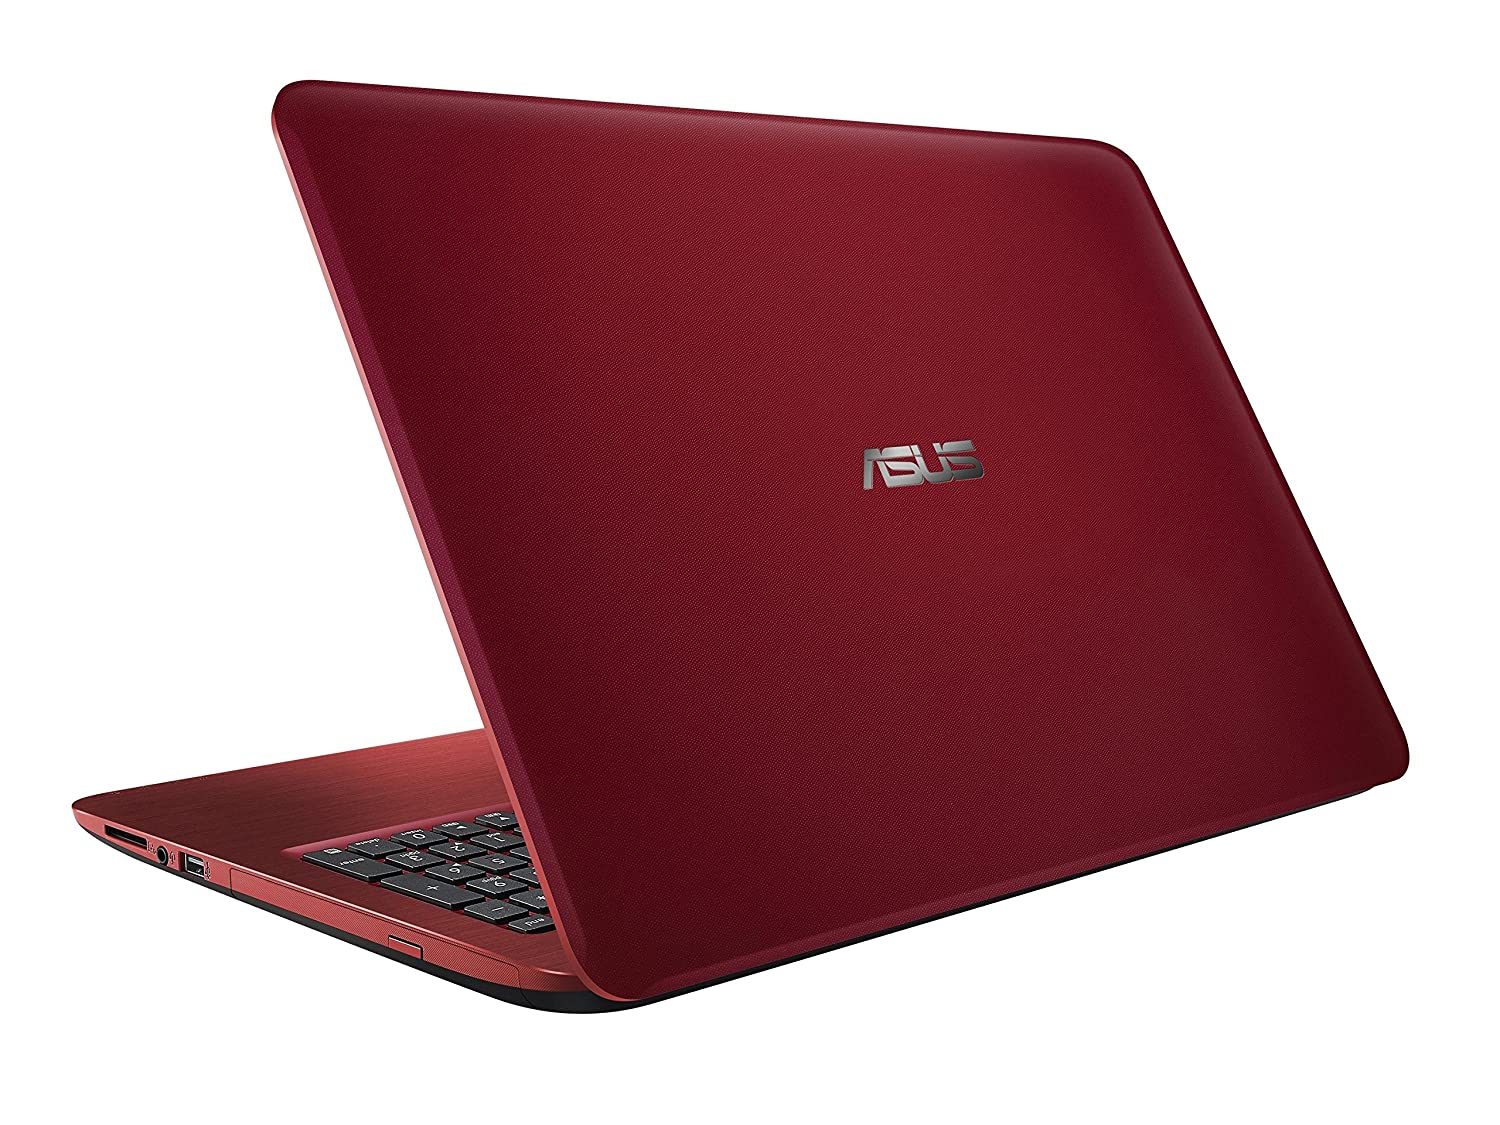 Asus R558UF DM176D 15.6 inch Laptop  Core i5 6200U/4 GB/1TB/DOS/2 GB Graphics , Red Laptops